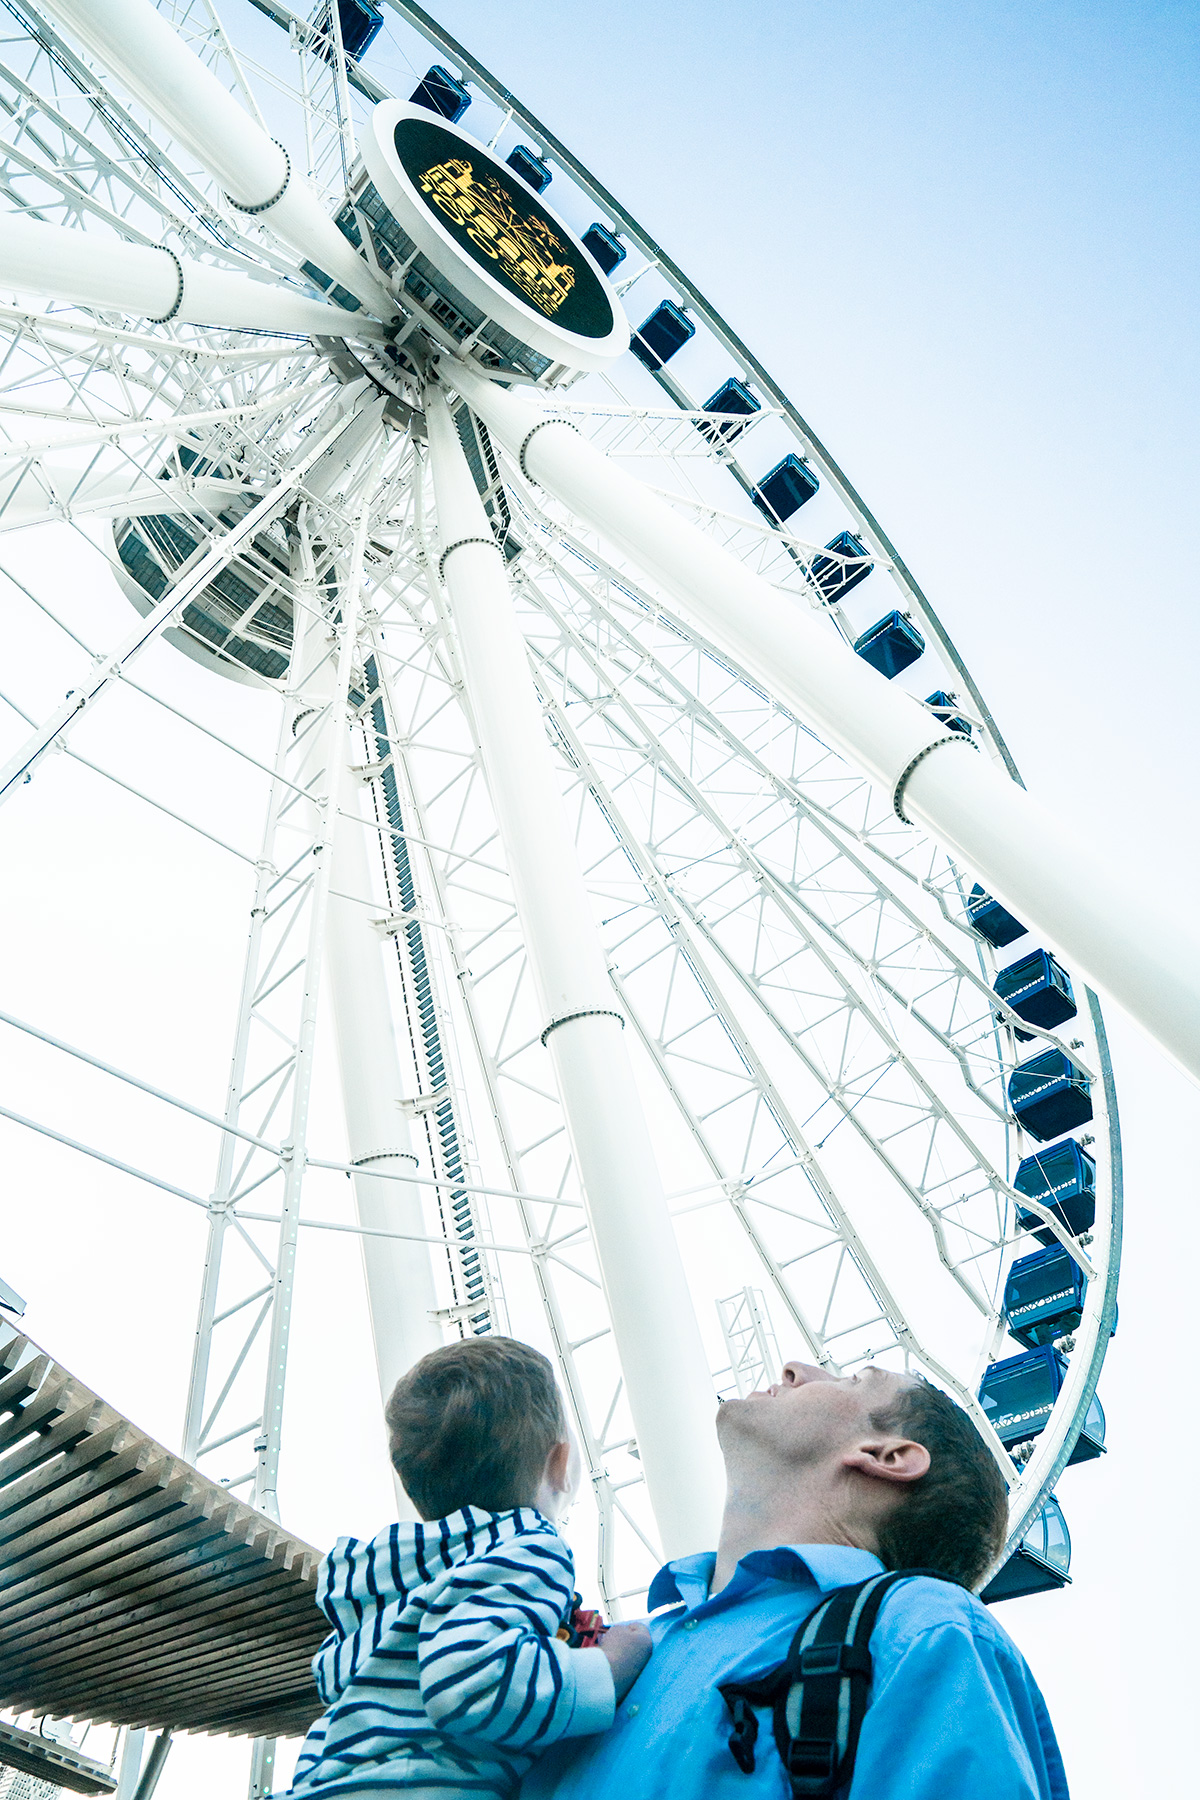 Centennial-Wheel-at-Navy-Pier-in-Chicago